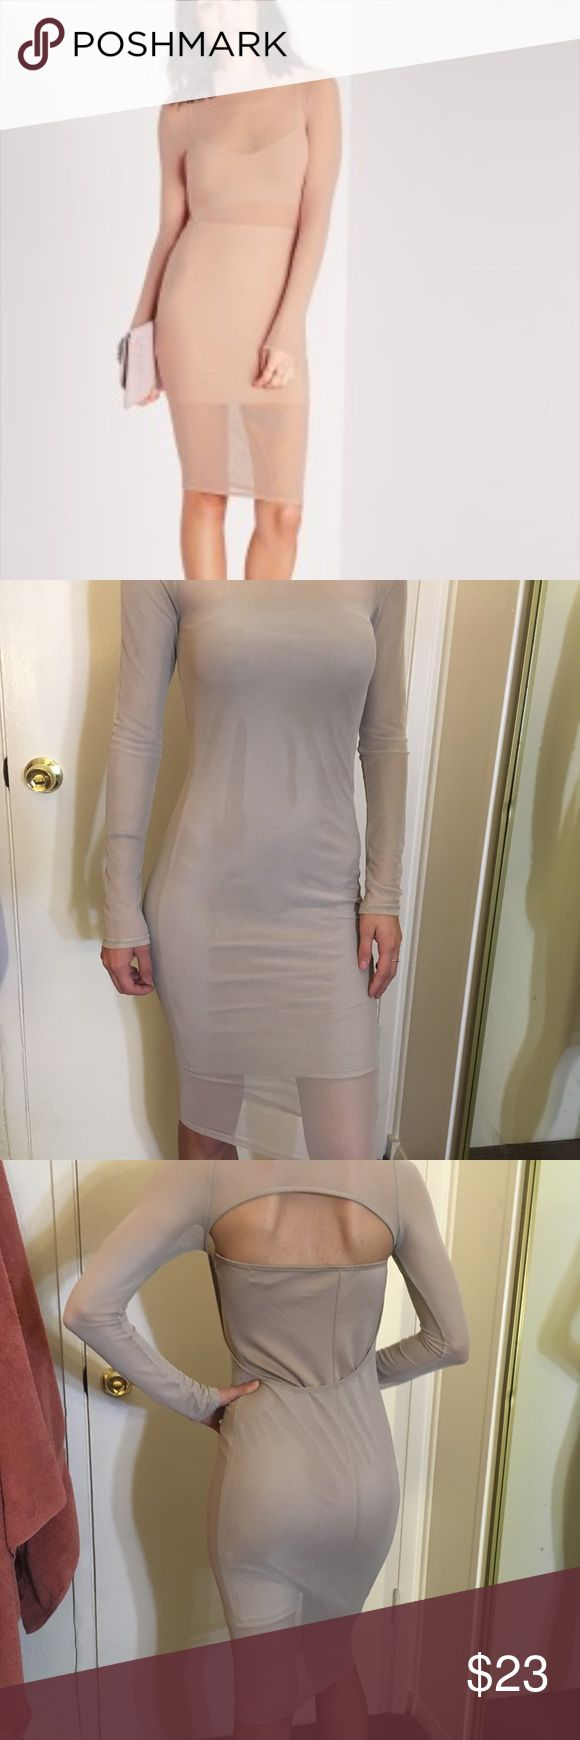 Nude mesh fitted dress Brand new!!  Nude mesh midi dress Well fitting  Long sleeve Purchased from a boutique in Beverly Hills this past weekend  It's Great quality! Dresses Midi